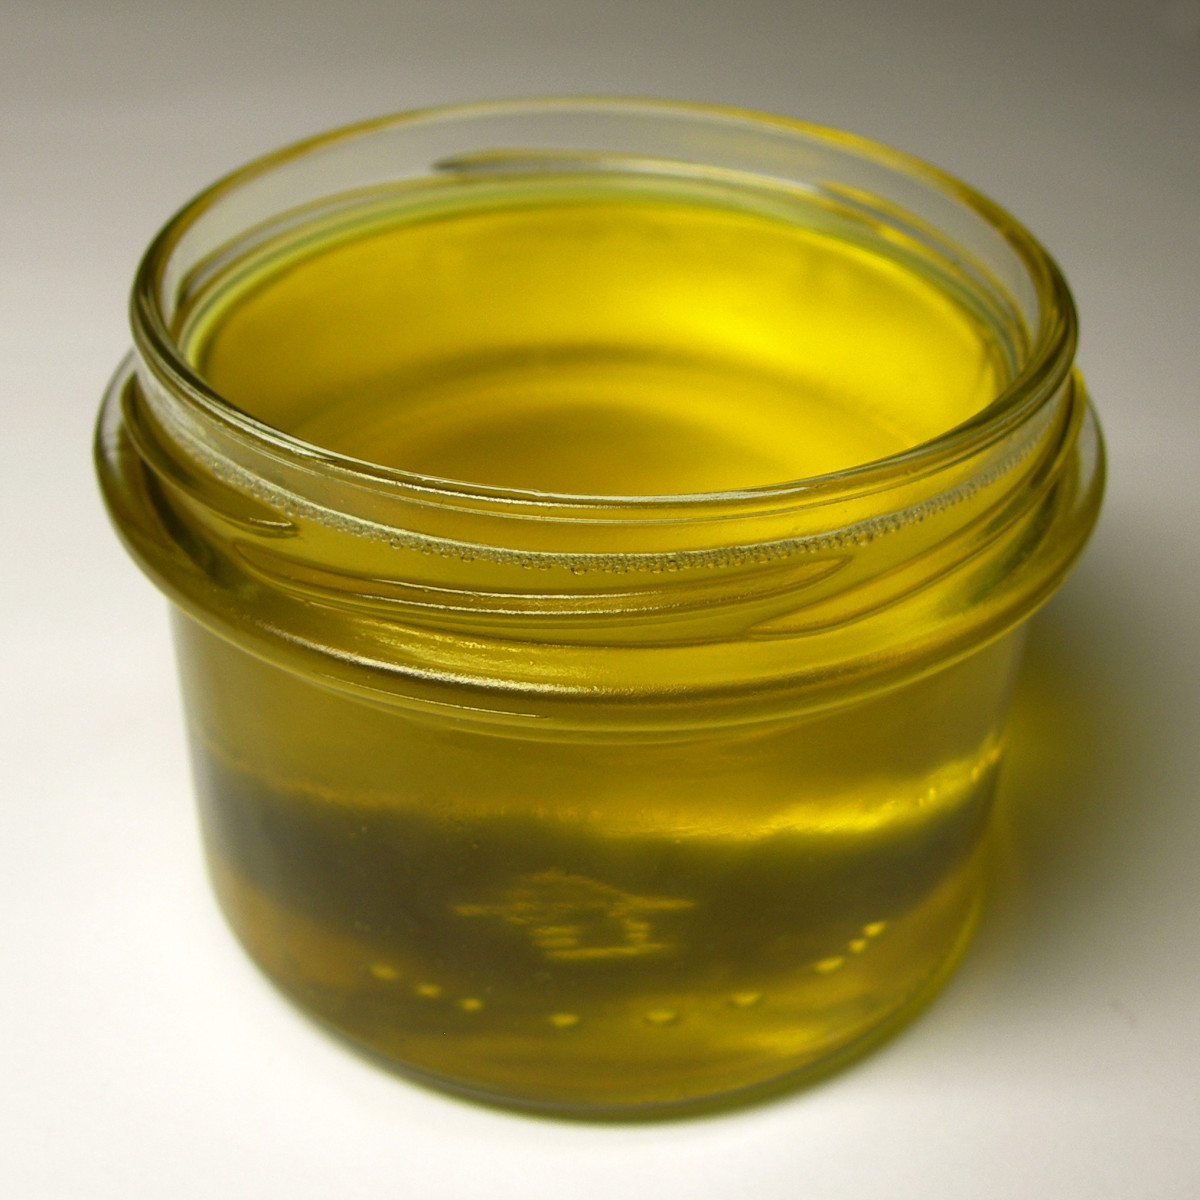 Fresh Ghee (clarified butter) recently made and still warm.